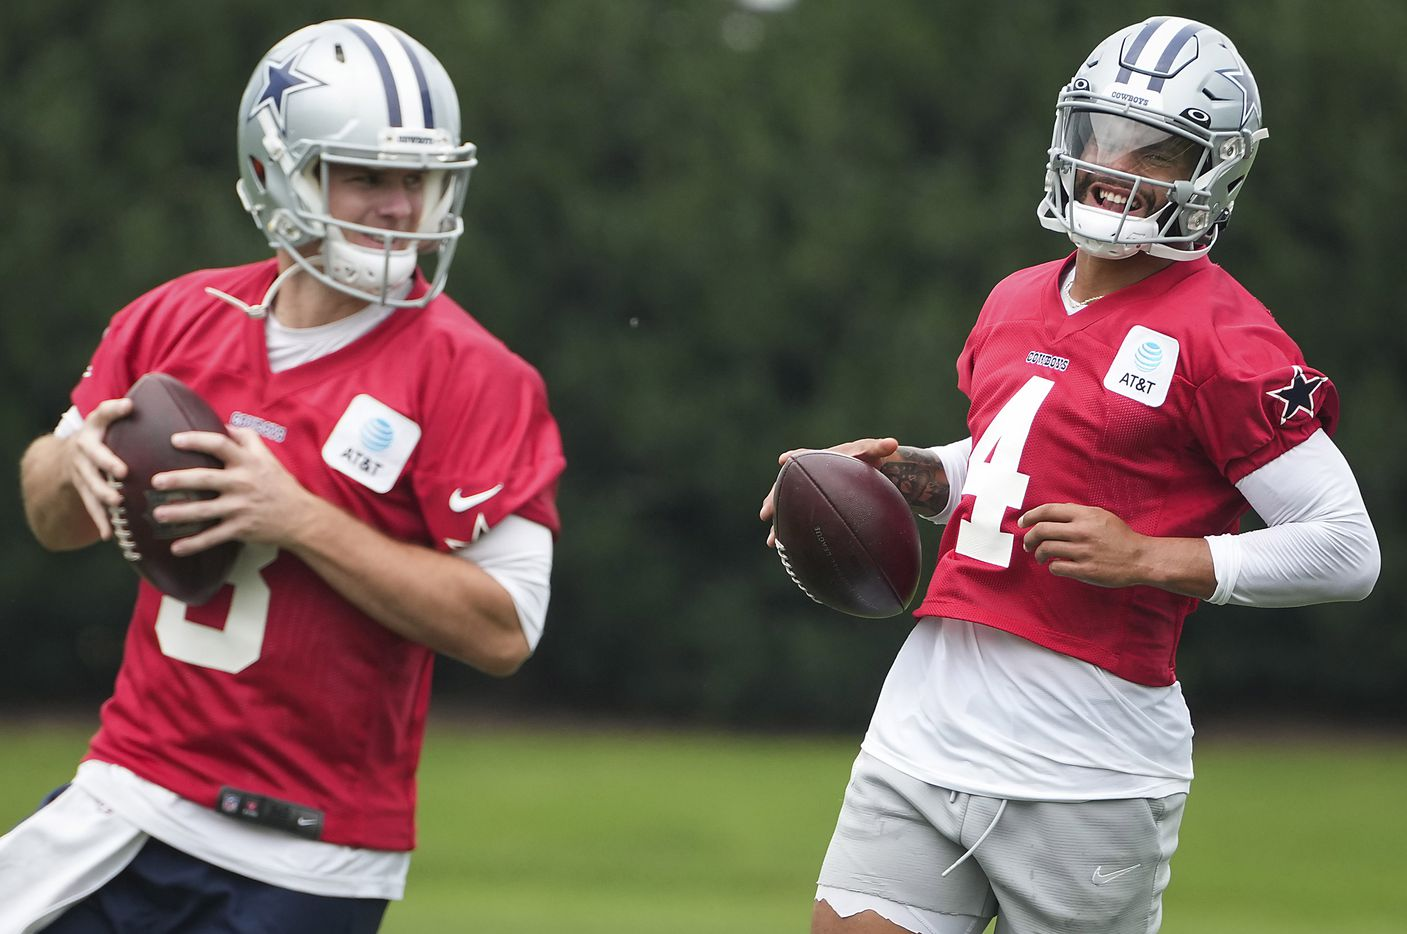 Dallas Cowboys quarterbacks Dak Prescott (4) and Garrett Gilbert (3) participate in a drill during a minicamp practice at The Star on Wednesday, June 9, 2021, in Frisco. (Smiley N. Pool/The Dallas Morning News)